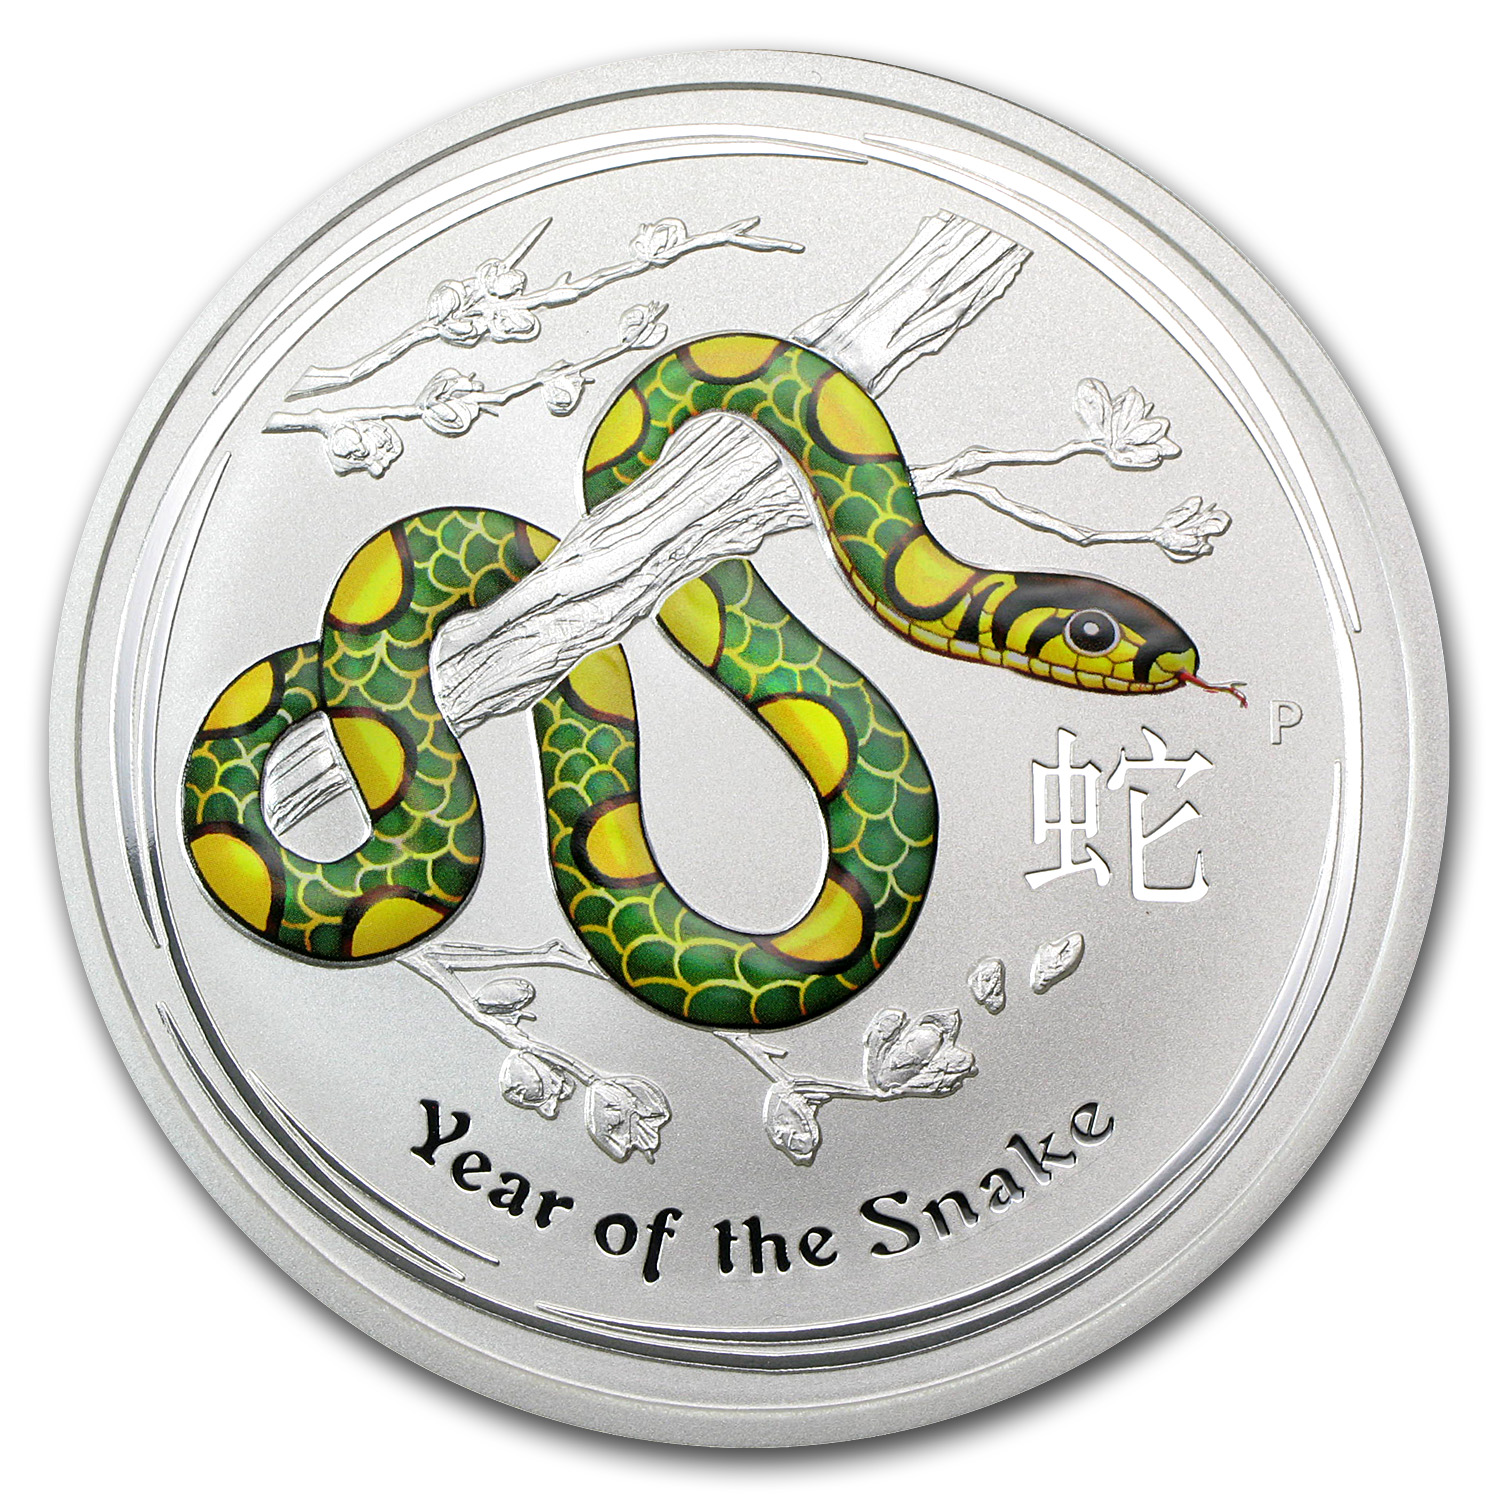 2013 5 oz Silver Australian Year of the Snake BU (Colorized)